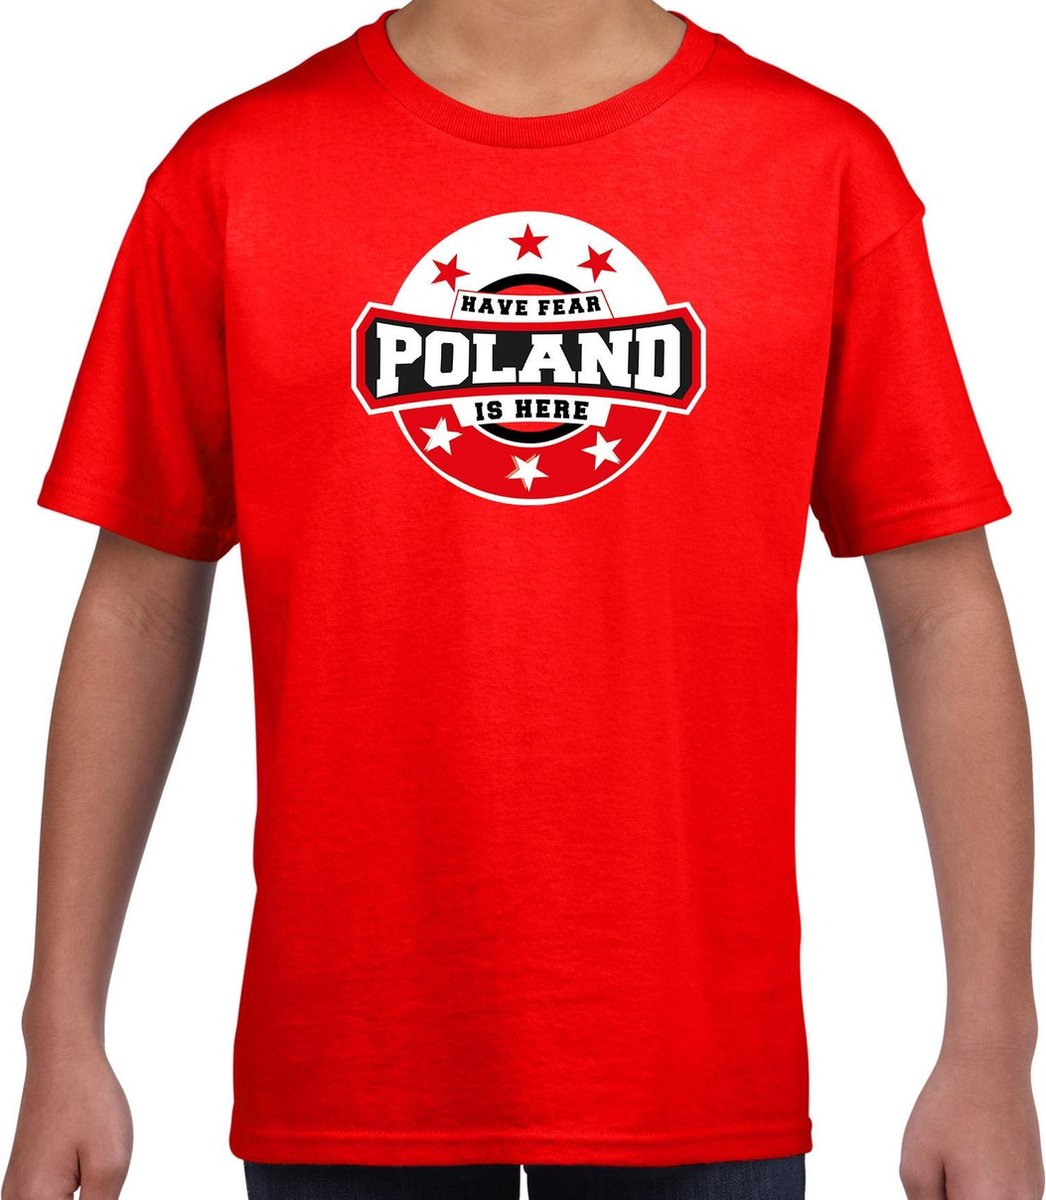 Have fear Poland is here / Polen supporter t-shirt rood voor kids S (122-128)